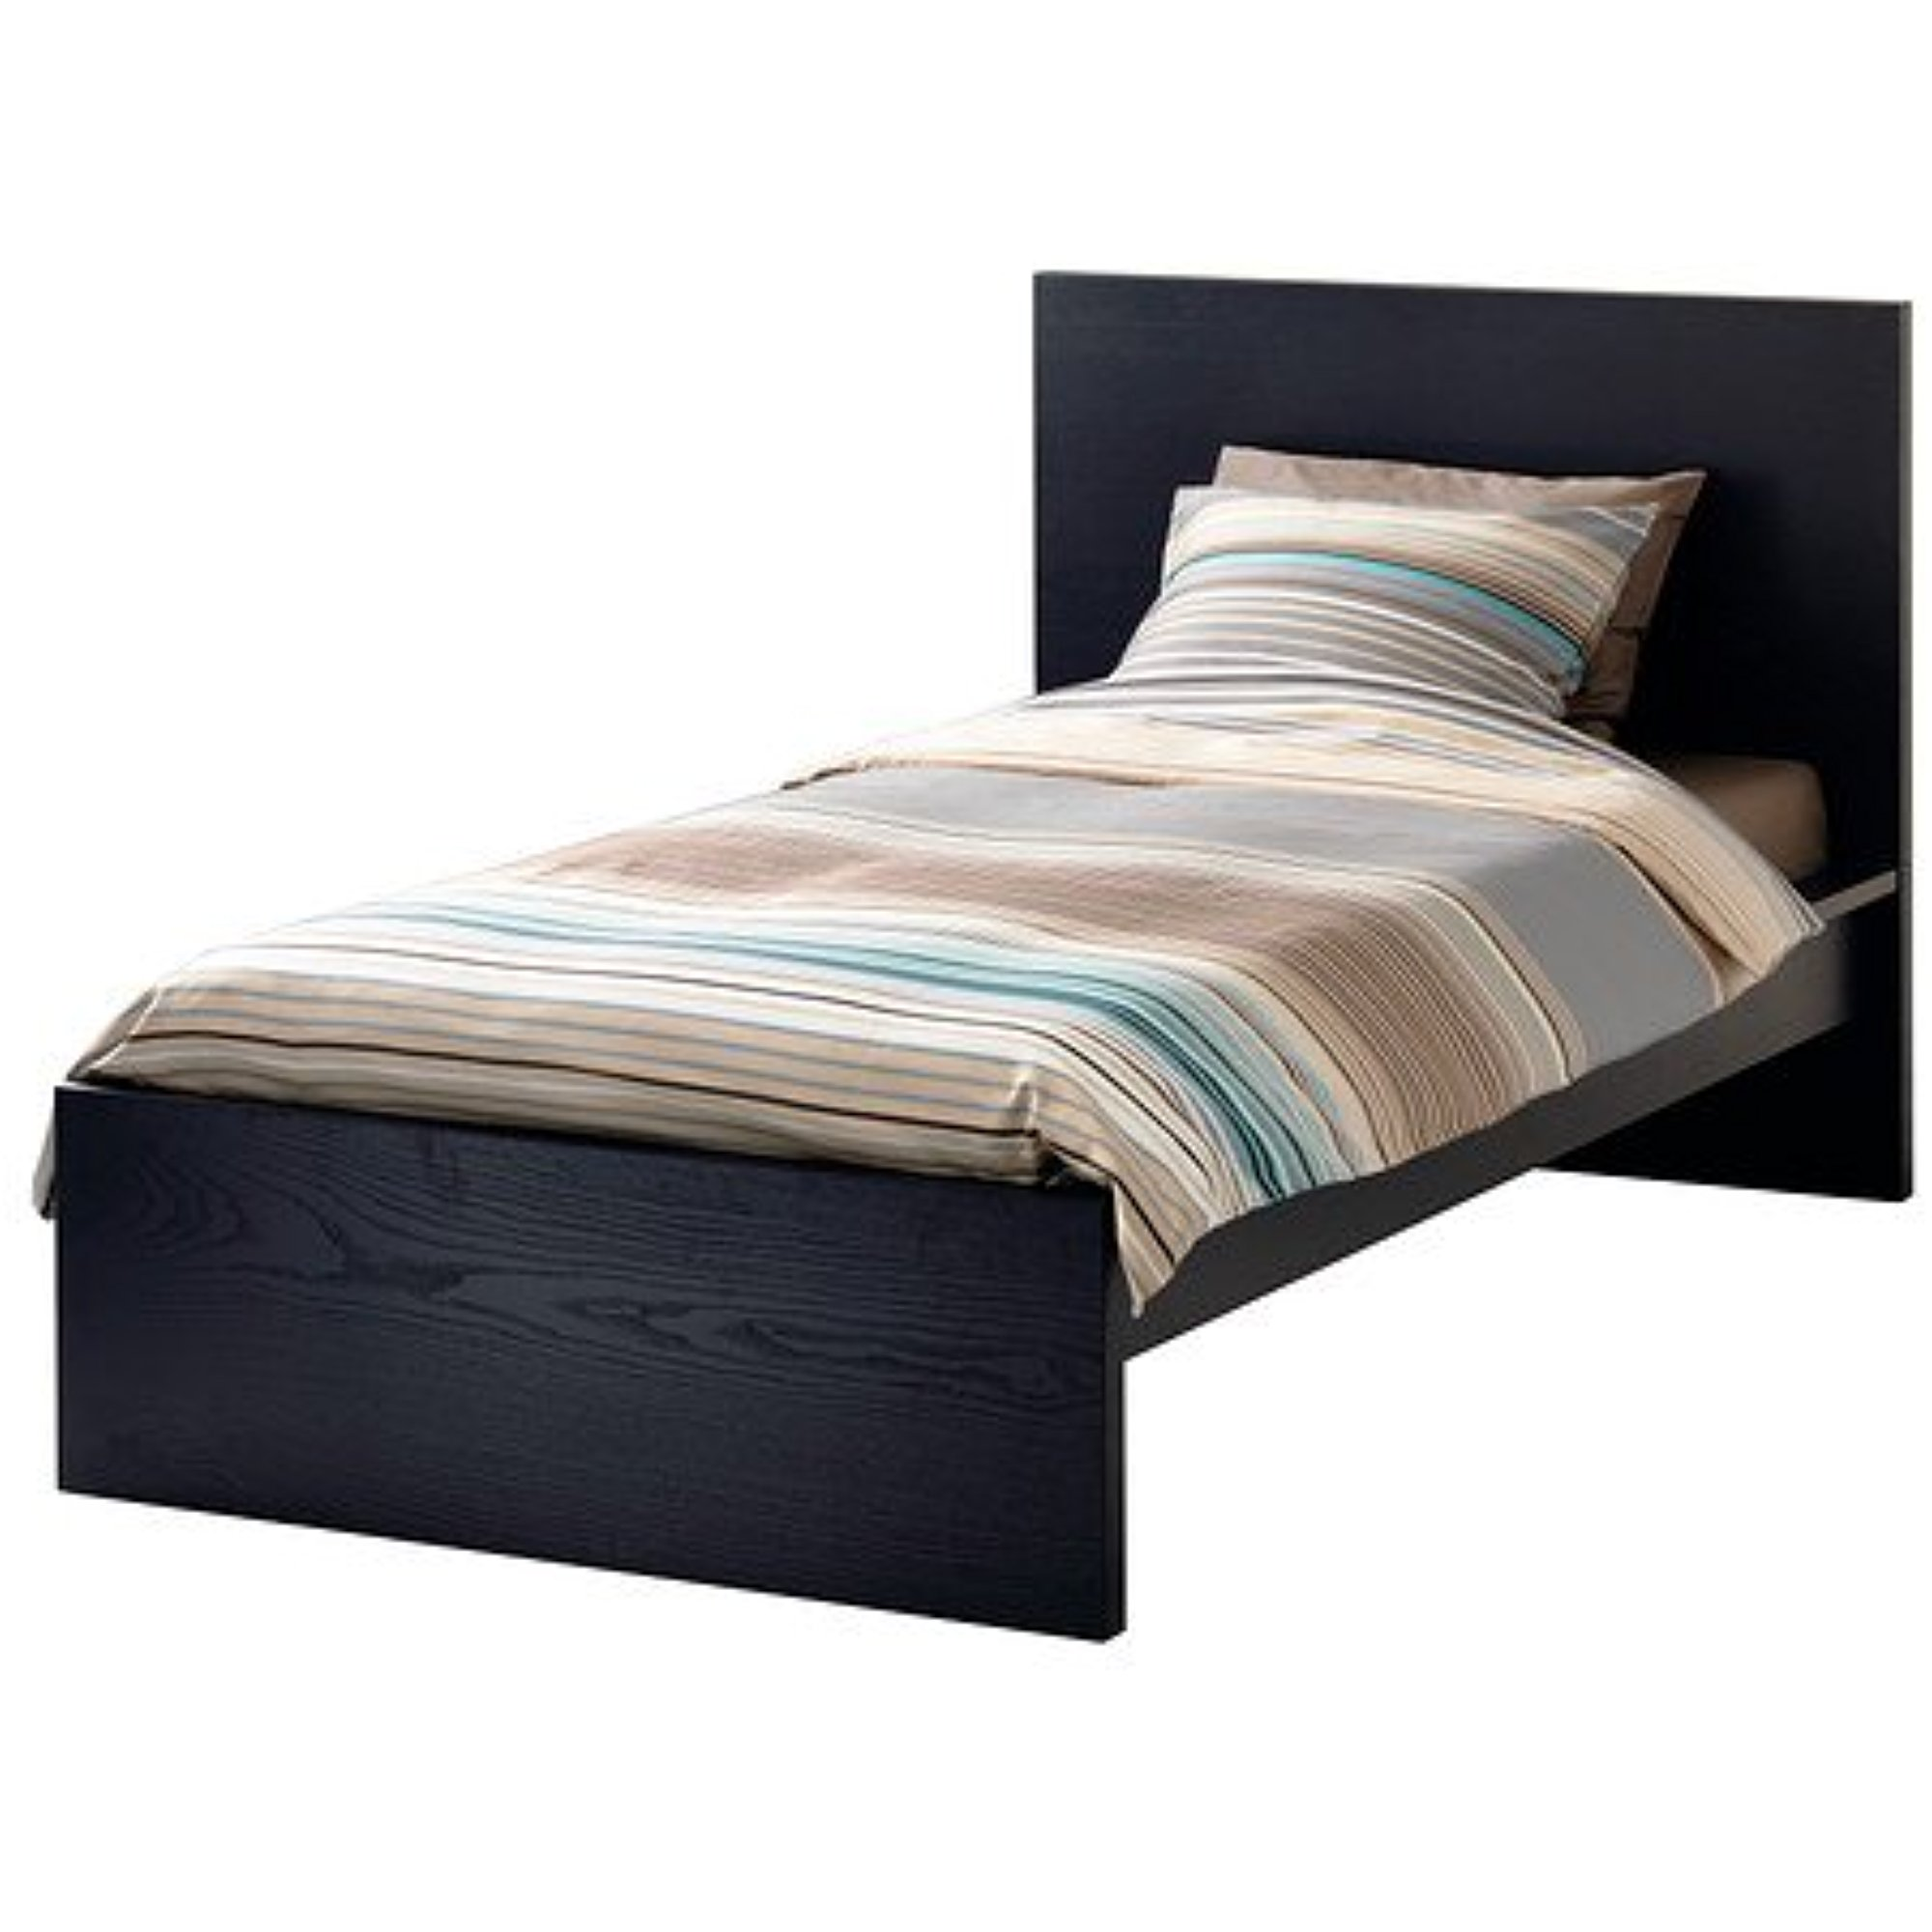 Twin Mattress Vs Single: Ikea Twin Size Bed Frame, High, Black-brown 6210.142914